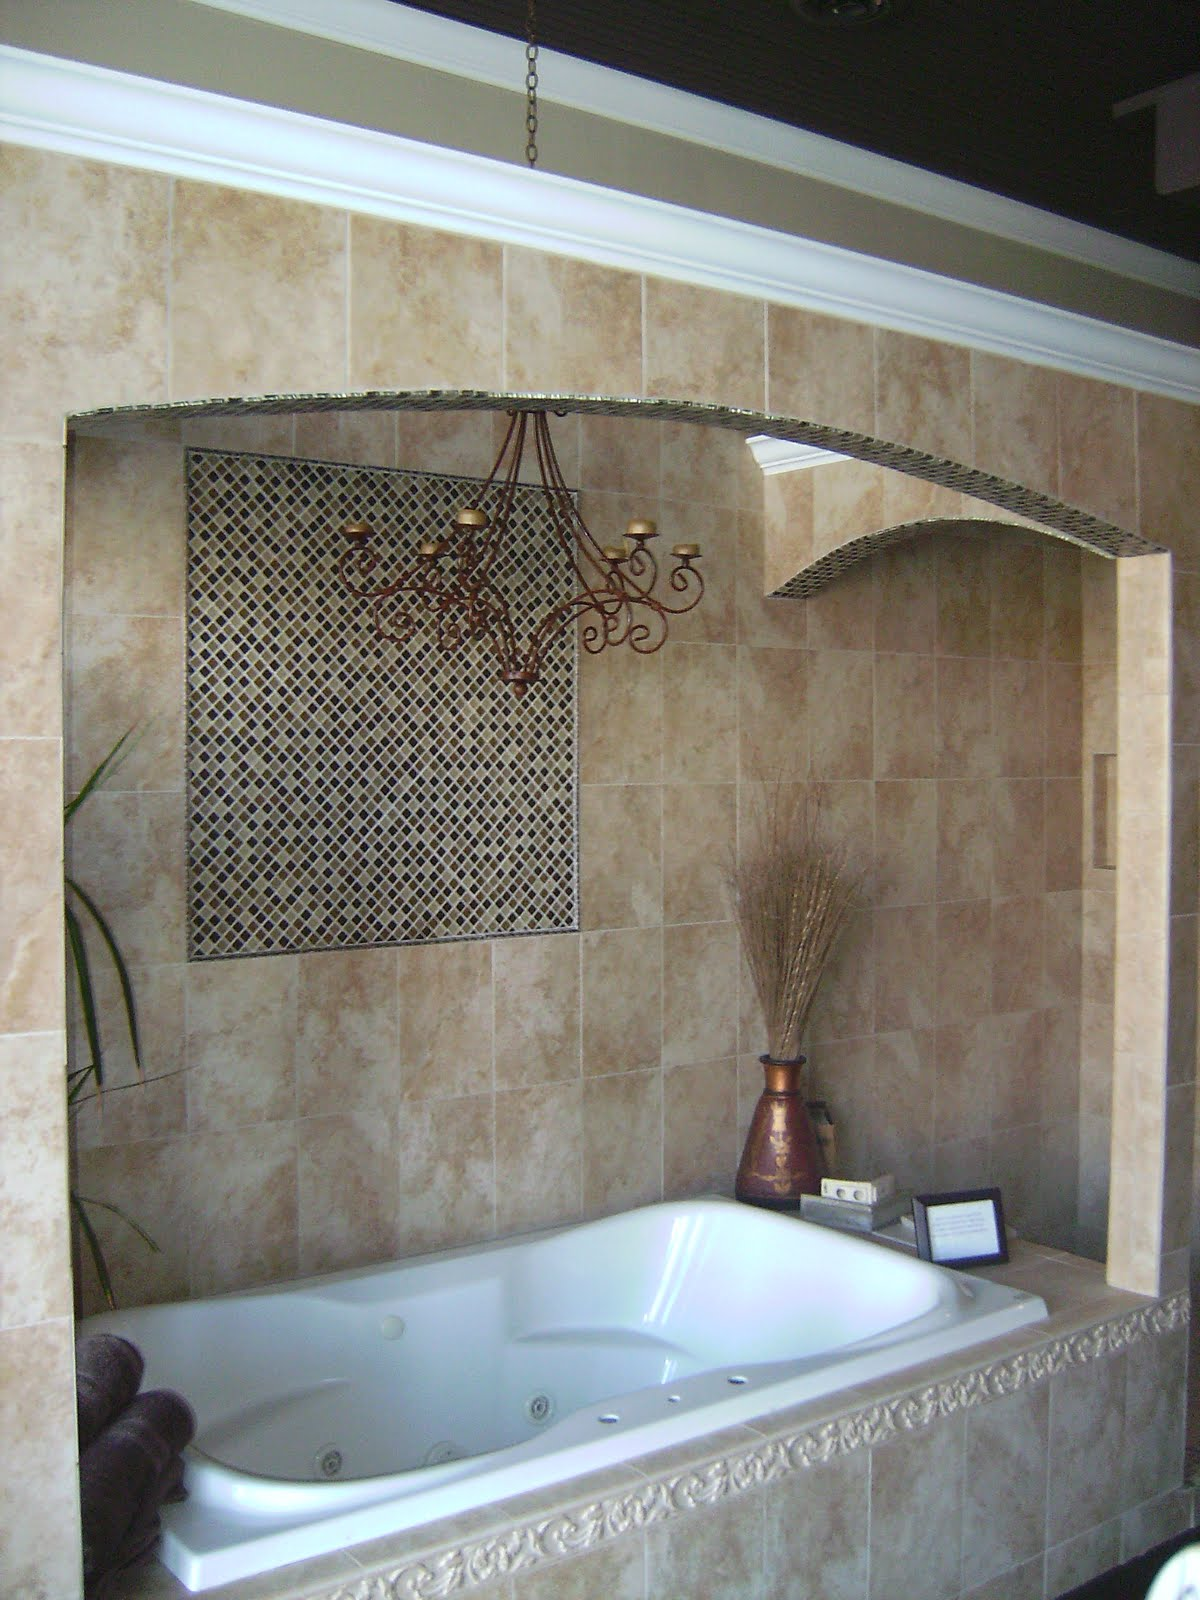 Knapp Tile and Flooring, Inc.: Shower/Tub Surround Combo